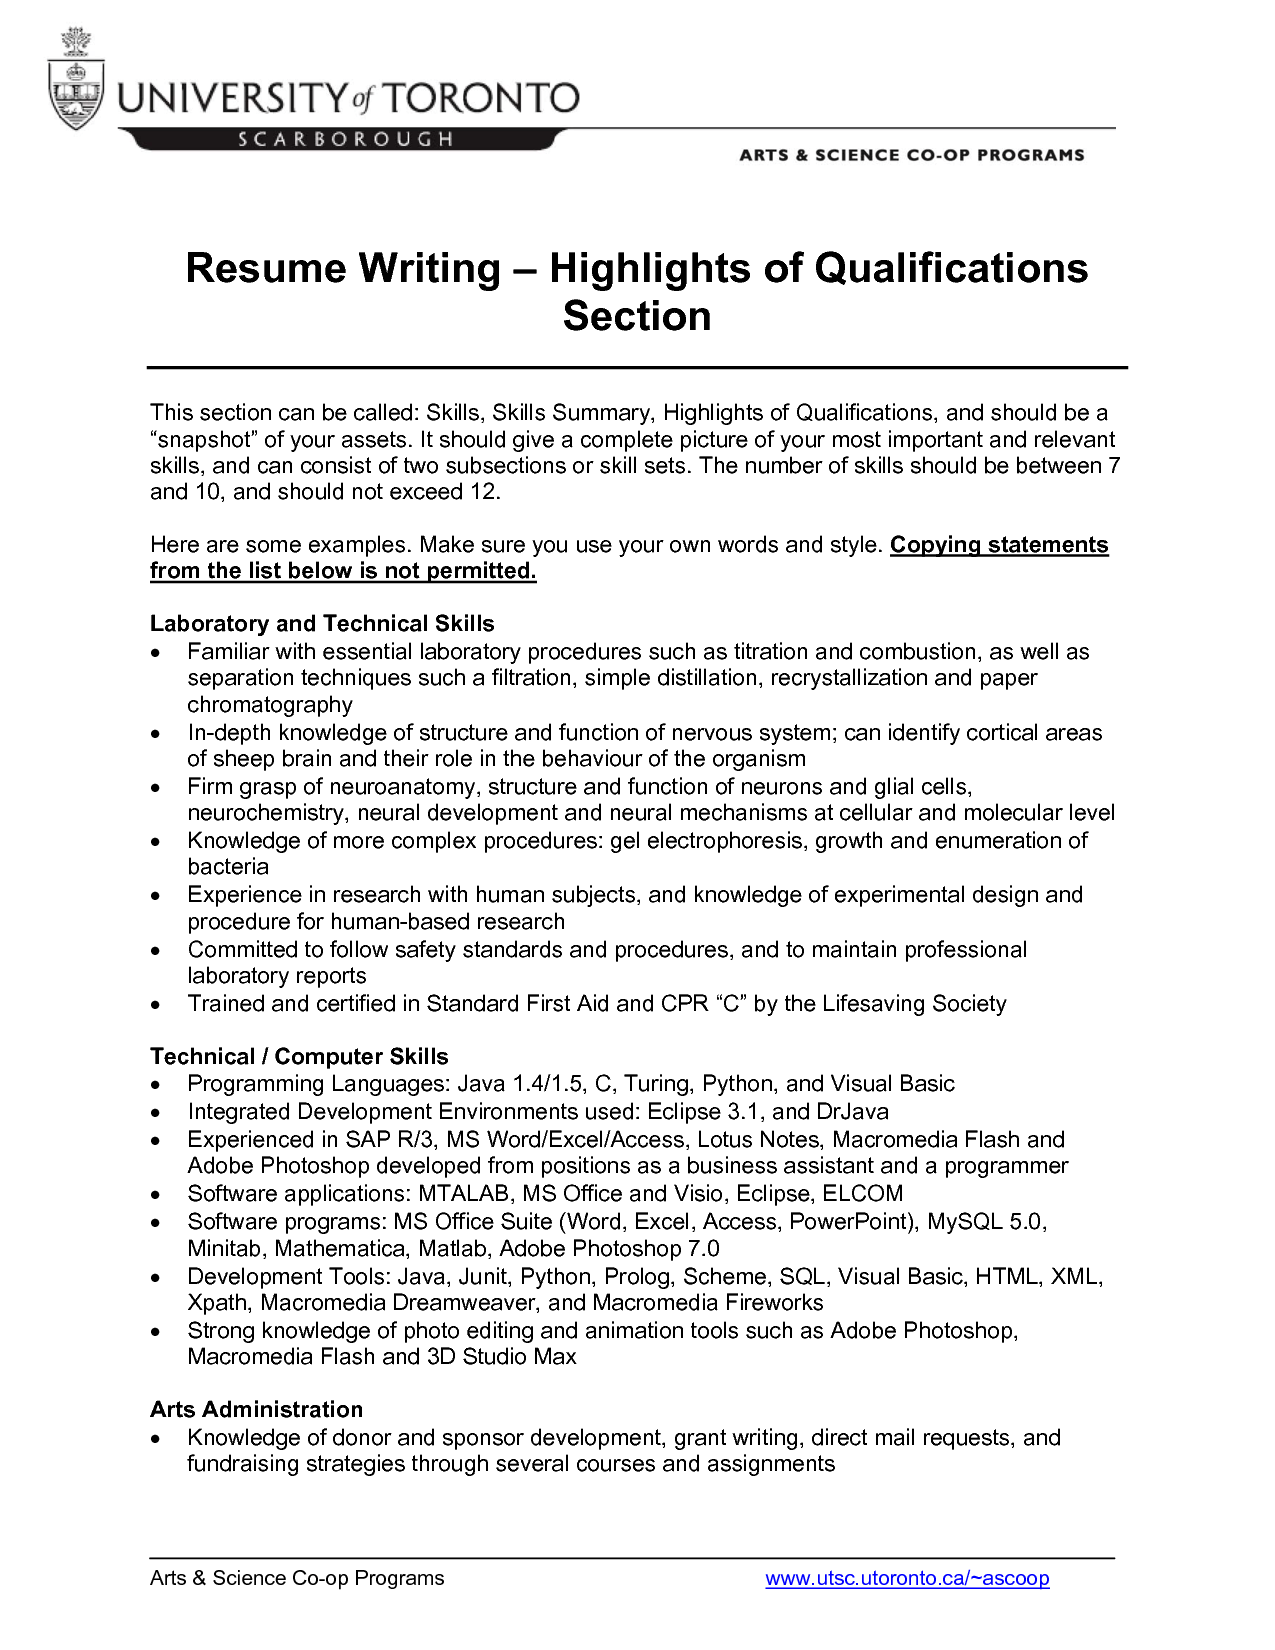 skills and abilities to list on resume